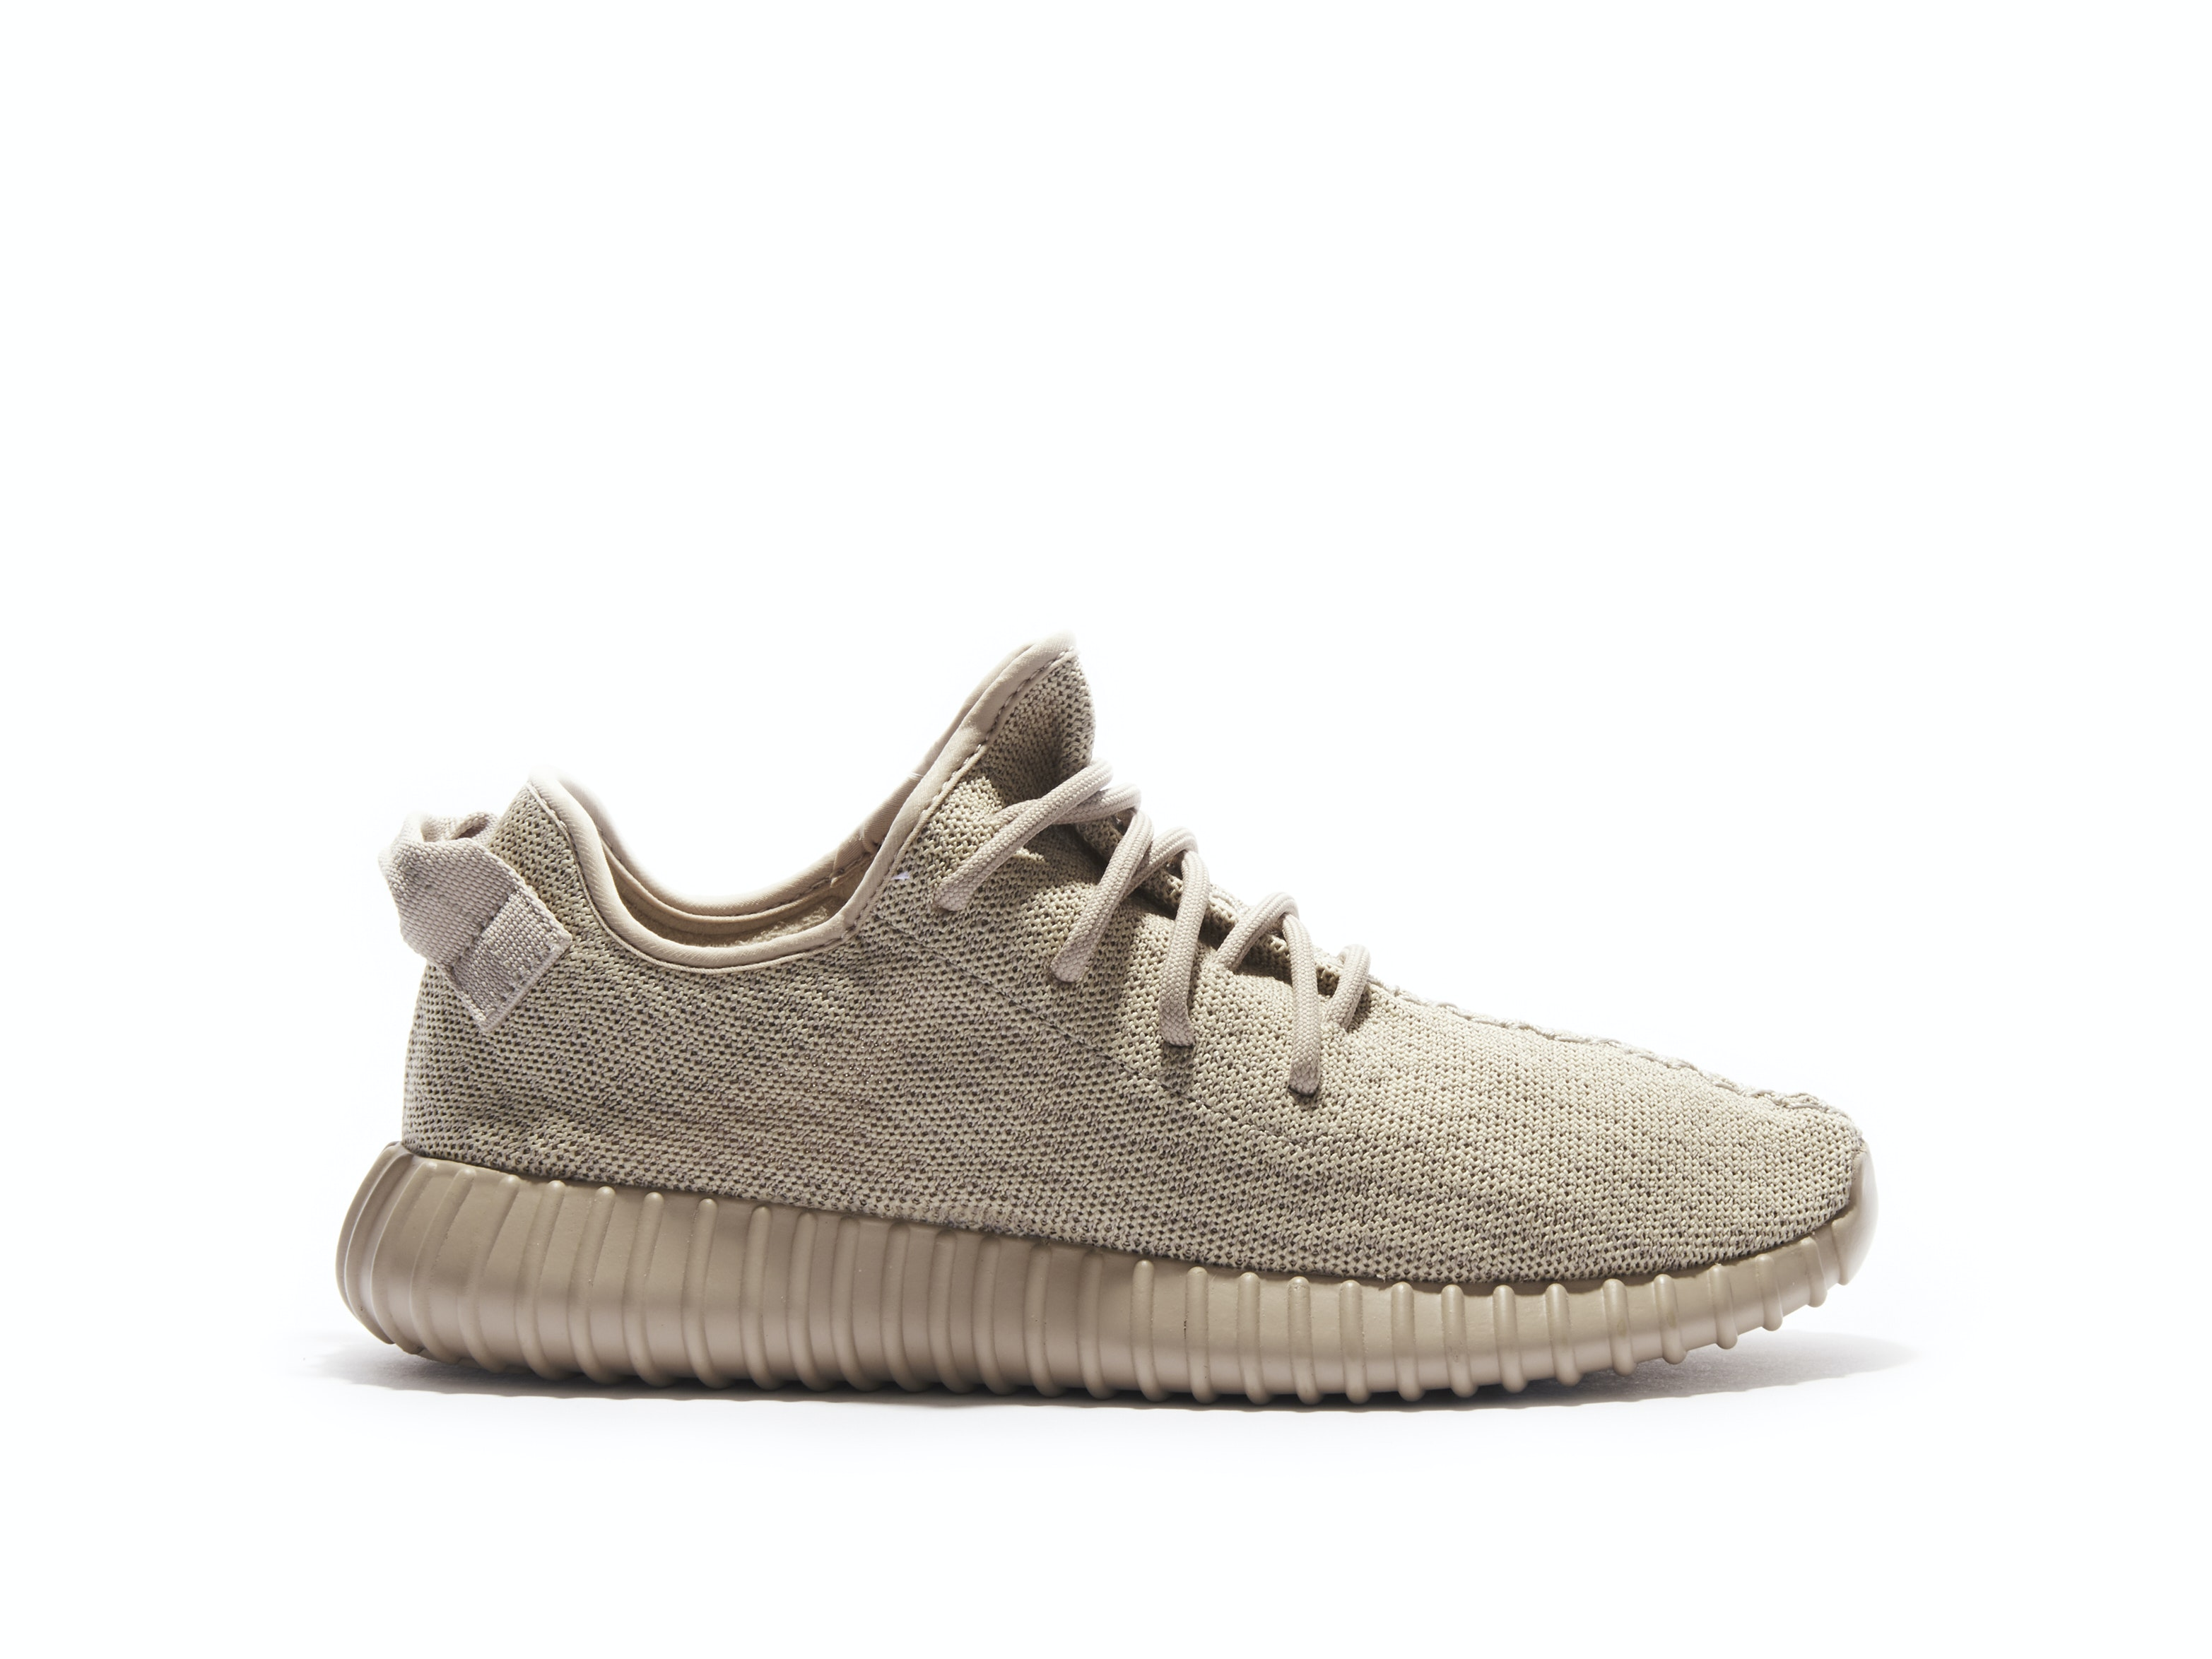 the best attitude c6f7f dcefb Yeezy Boost 350 Oxford Tan. 100% AuthenticAvg Delivery Time  1-2 days.  Adidas   AQ2661